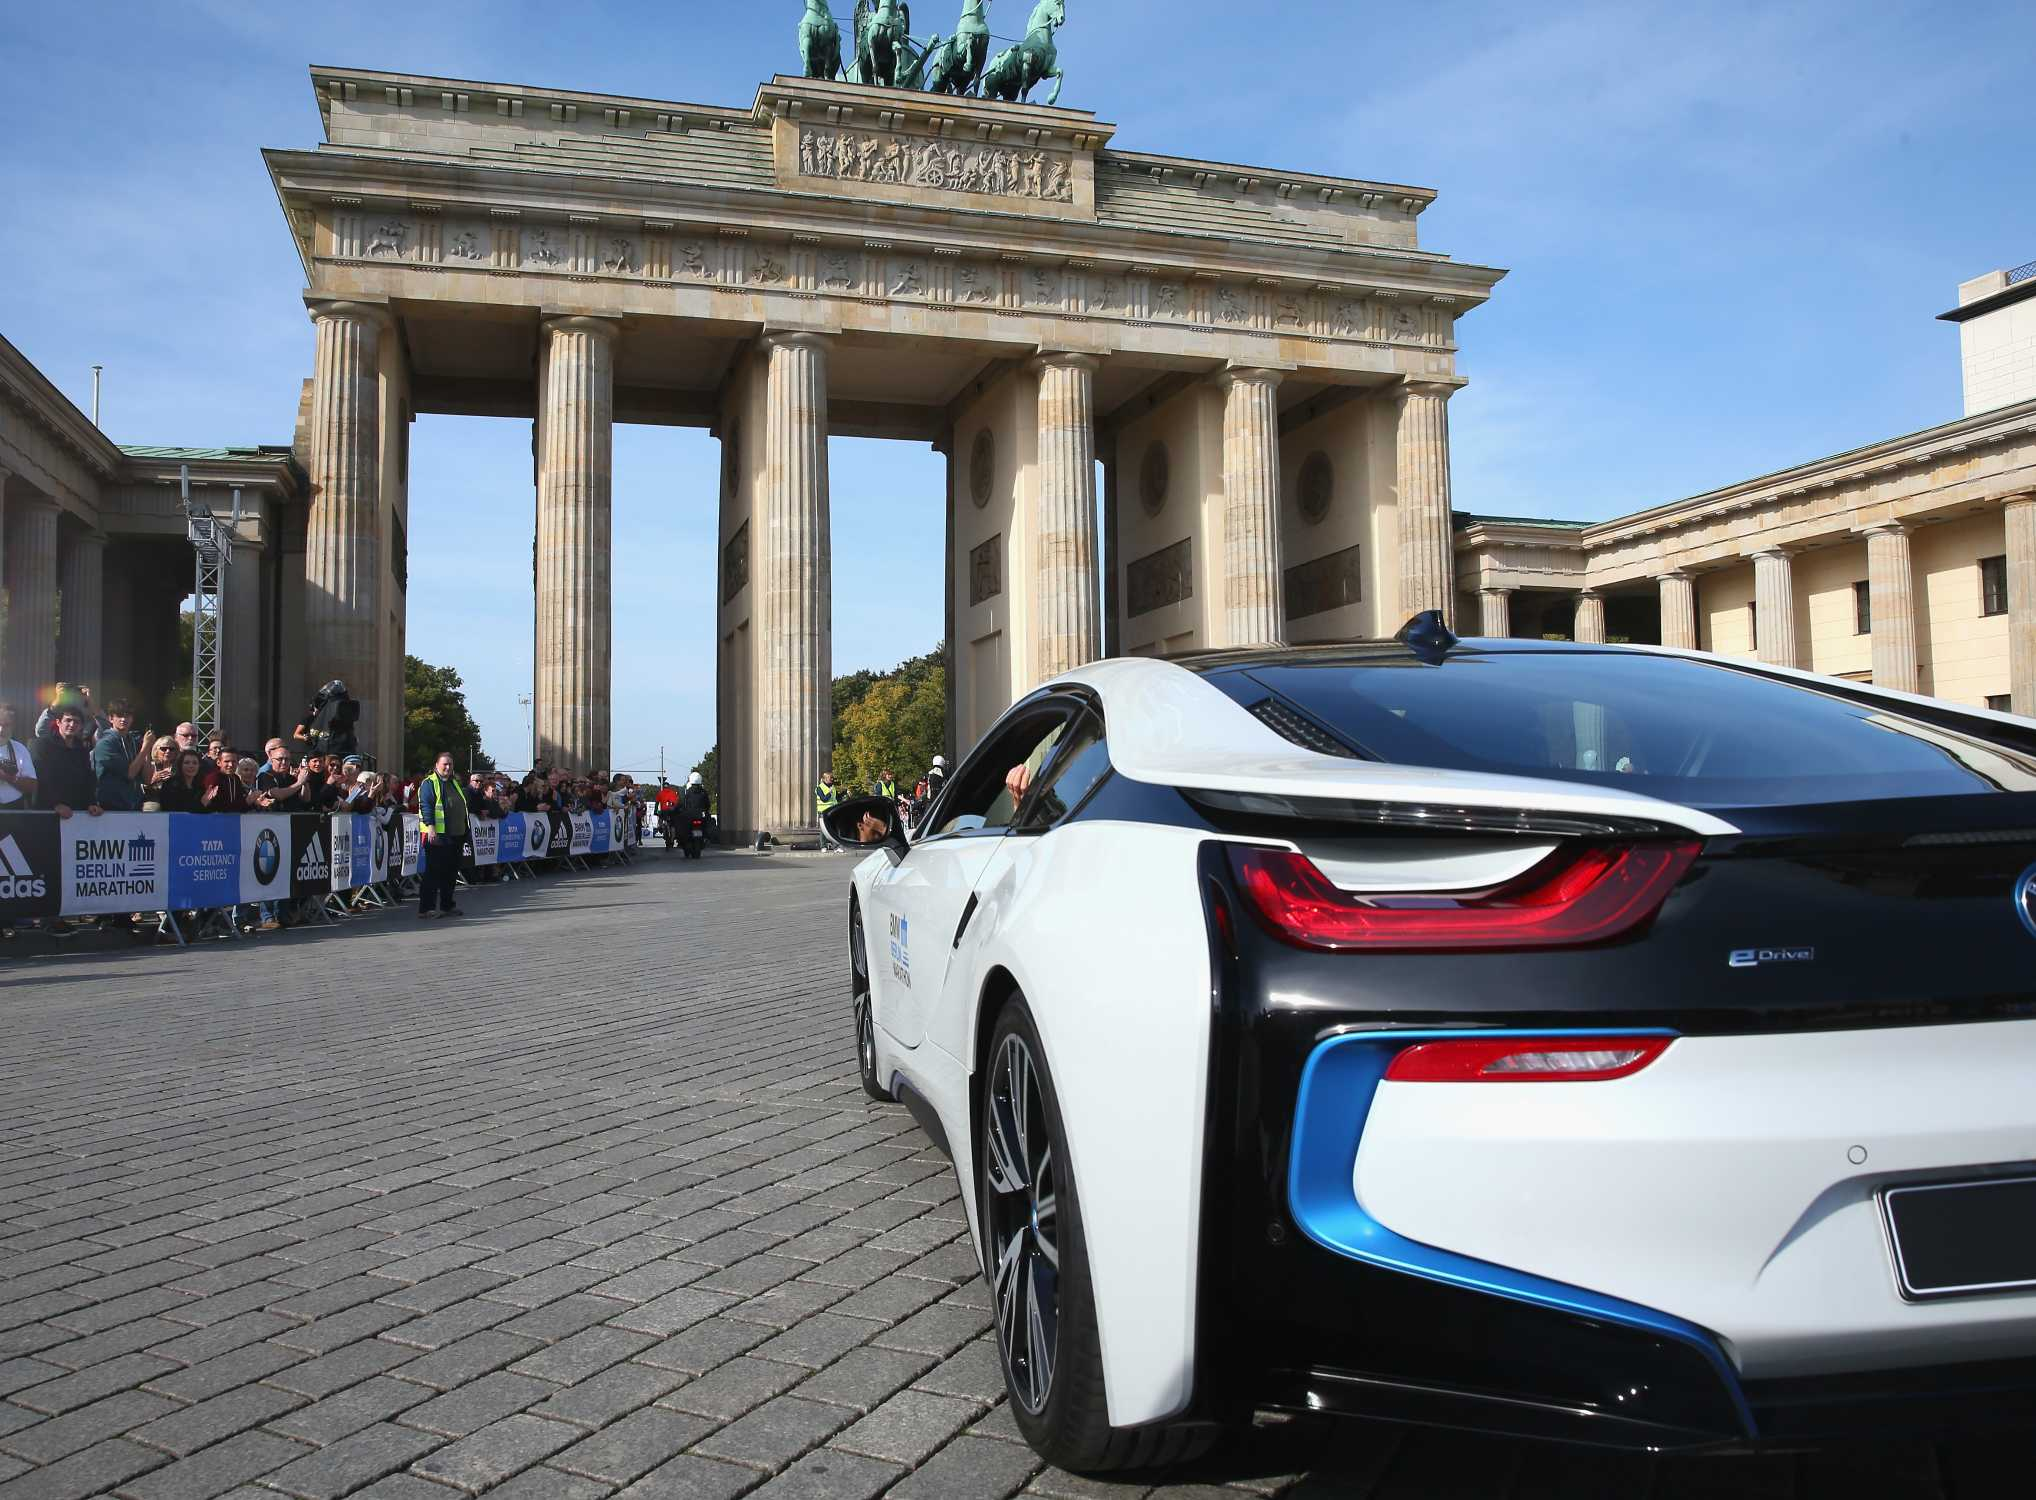 28th september 2014 41th bmw berlin marathon bmw sportbotschafterin katarina witt bmw i8. Black Bedroom Furniture Sets. Home Design Ideas